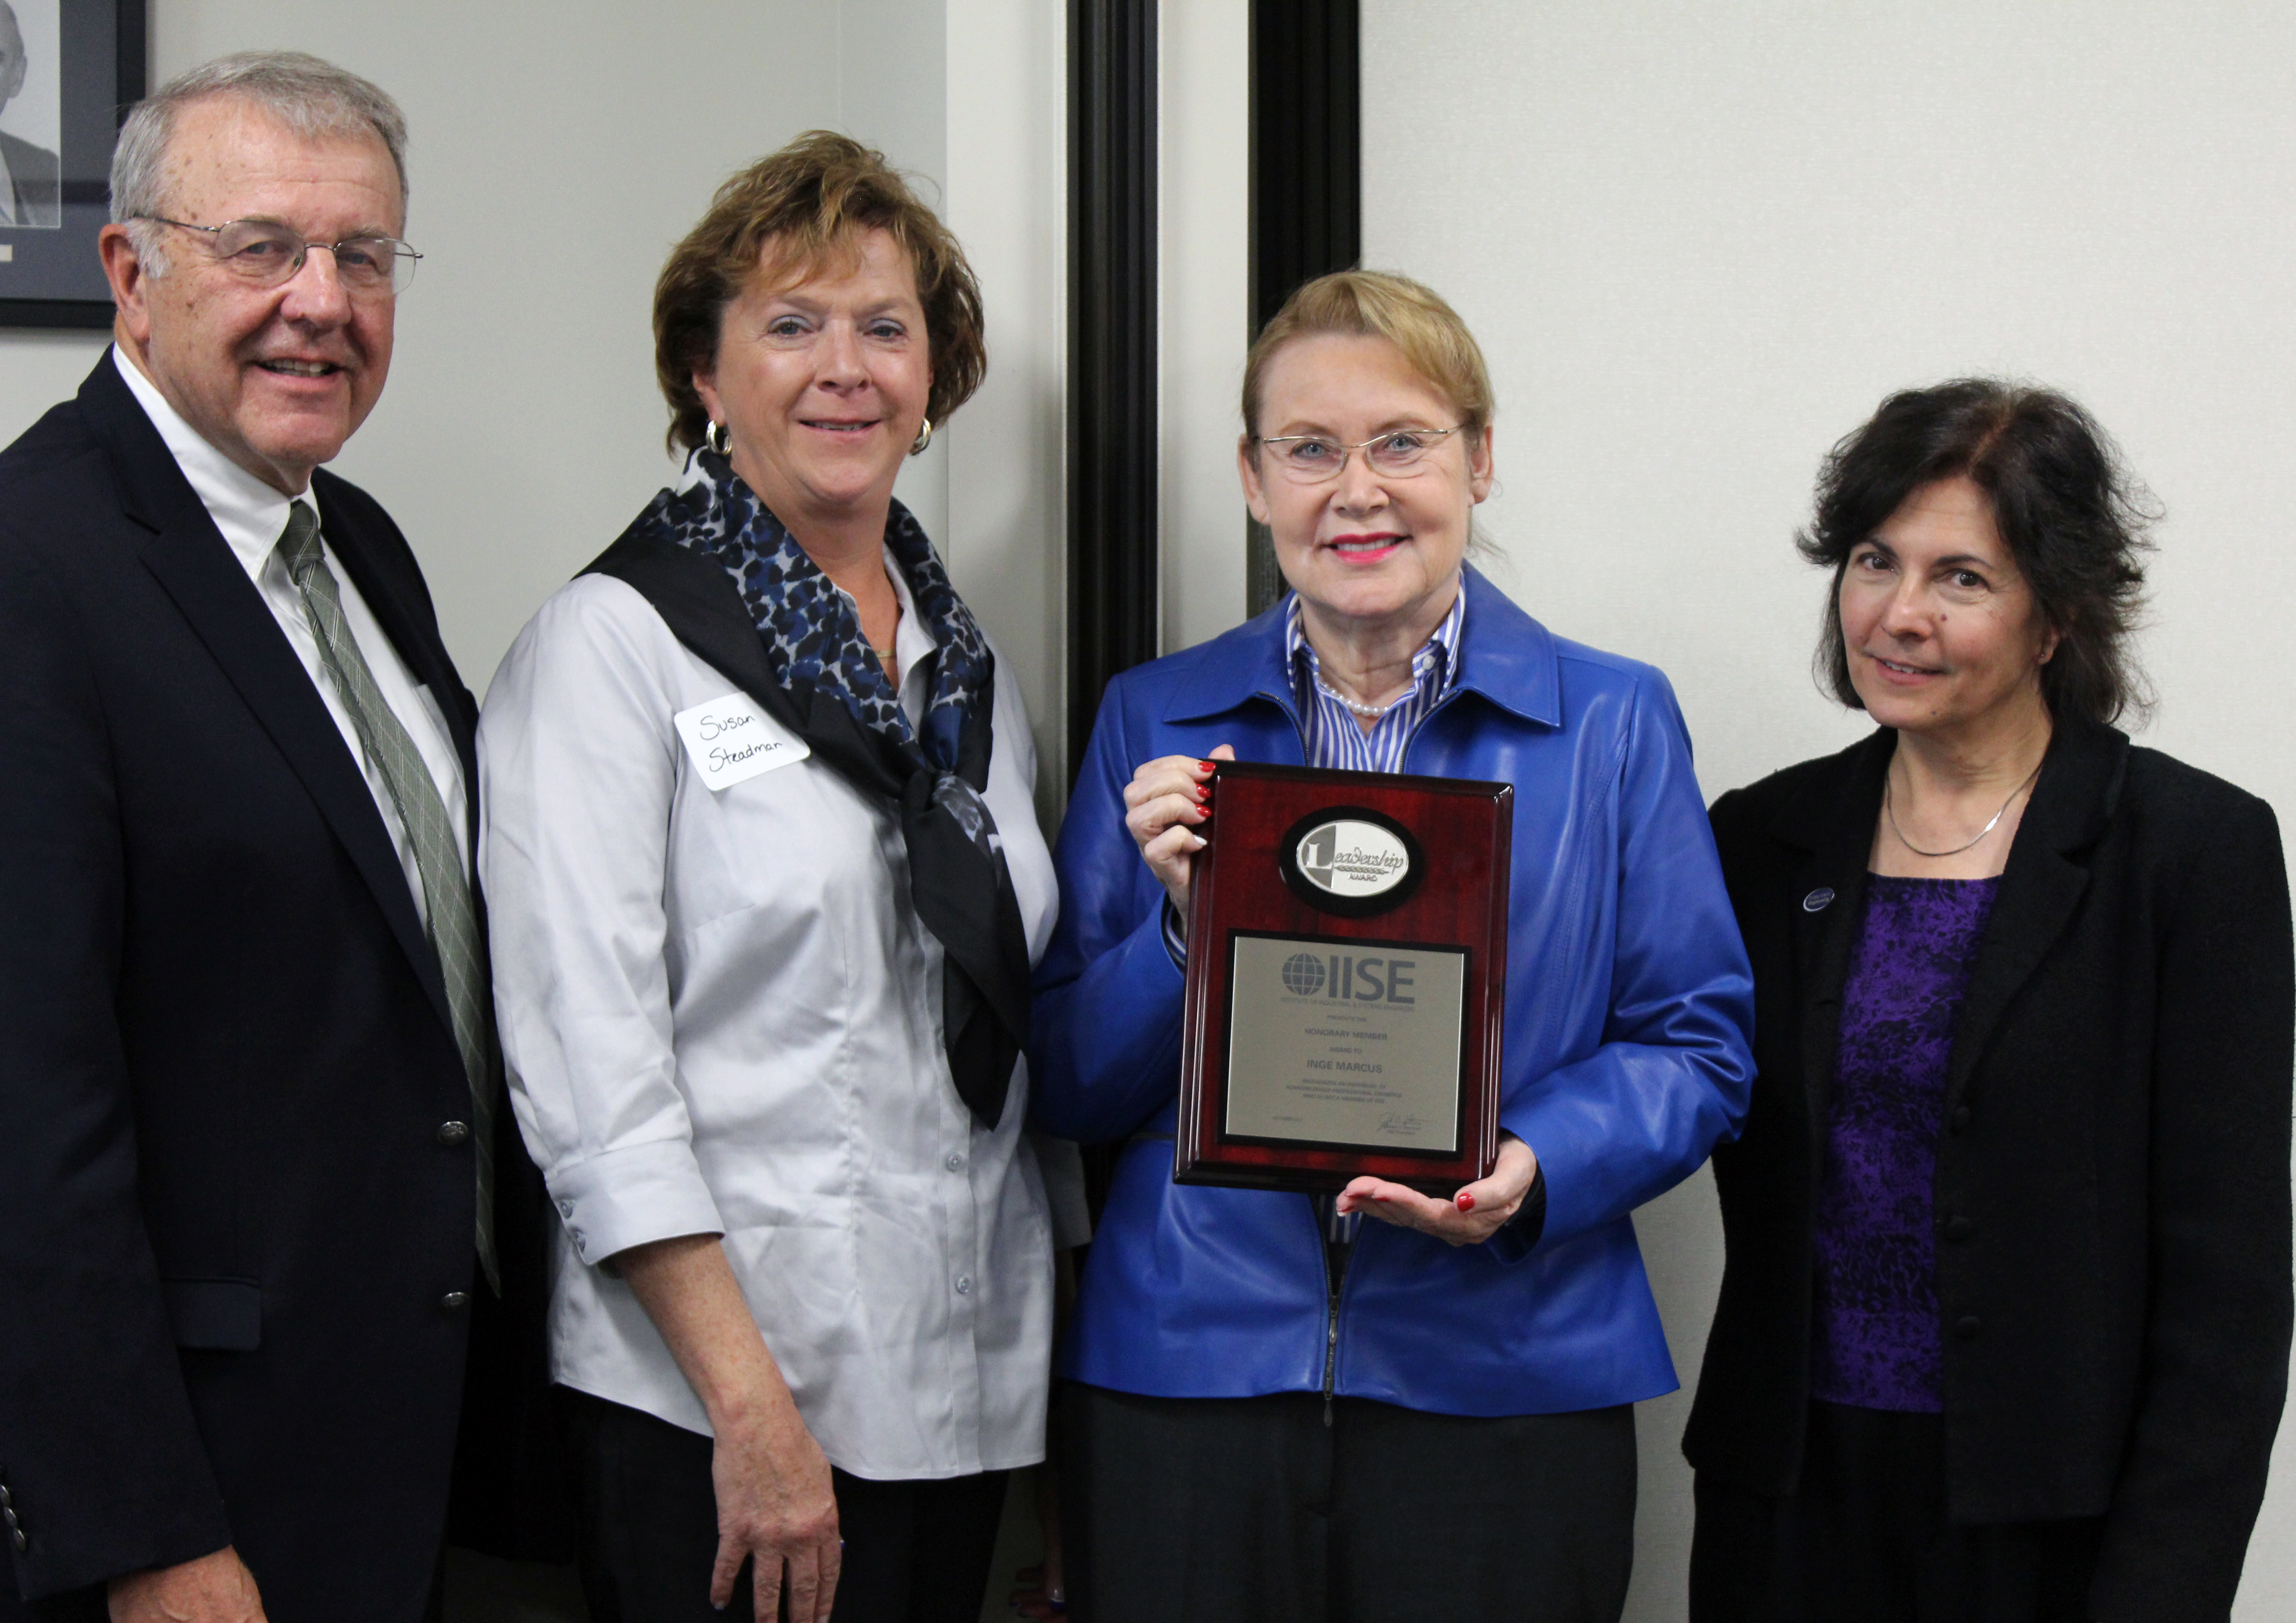 "Inge Marcus (pictured holding plaque) was presented with an honorary membership to the Institute of Industrial and Systems Engineers (IISE) at an Oct. 20, 2017, ceremony at The Pennsylvania State University campus in celebration of the life and contributions of Marcus and her late husband Harold ""Hal"" Marcus. Former IISE Presidents Alan Soyster (left), a former head of the Harold & Inge Marcus Department of Industrial & Manufacturing Engineering (IME), and Susan Steadman, also an IME alumna, along with Peter and Angela Dal Pezzo Department Head Janis Terpenny (right), presented Marcus with the plaque on behalf of IISE. (Pam Wertz/Penn State)"